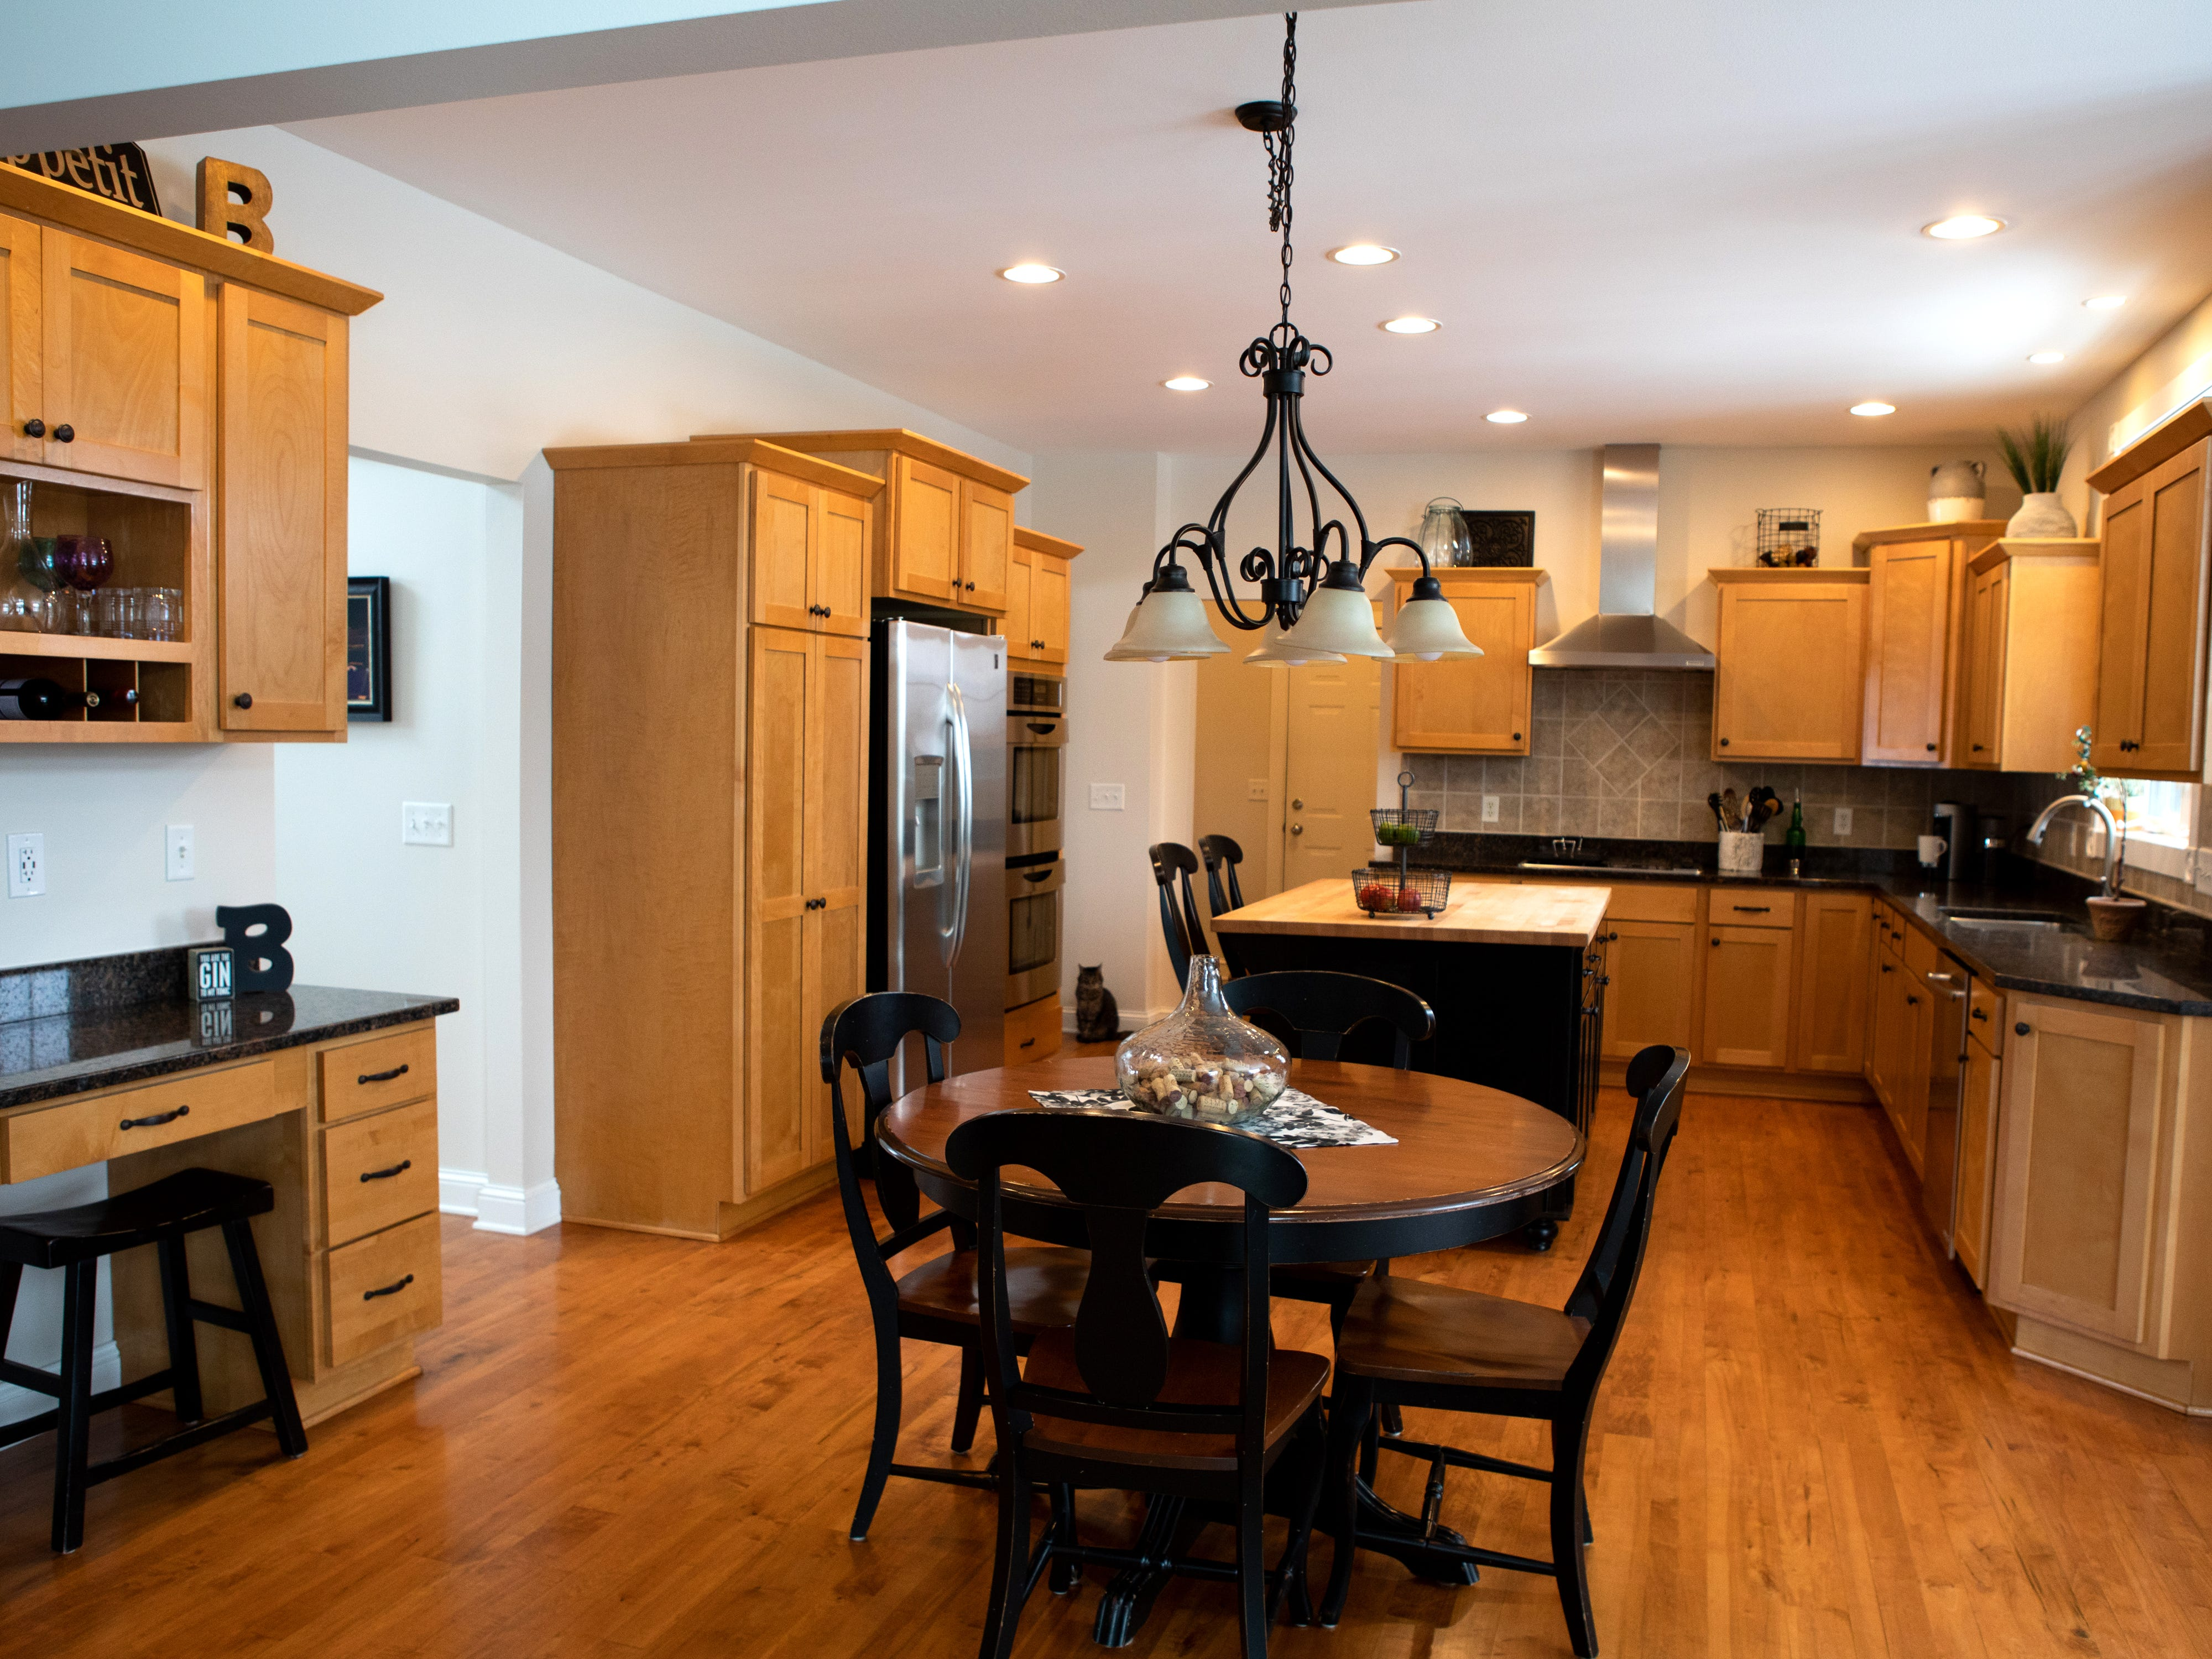 This kitchen needed an update, so the owners called in Tara Knox to paint the cabinets.